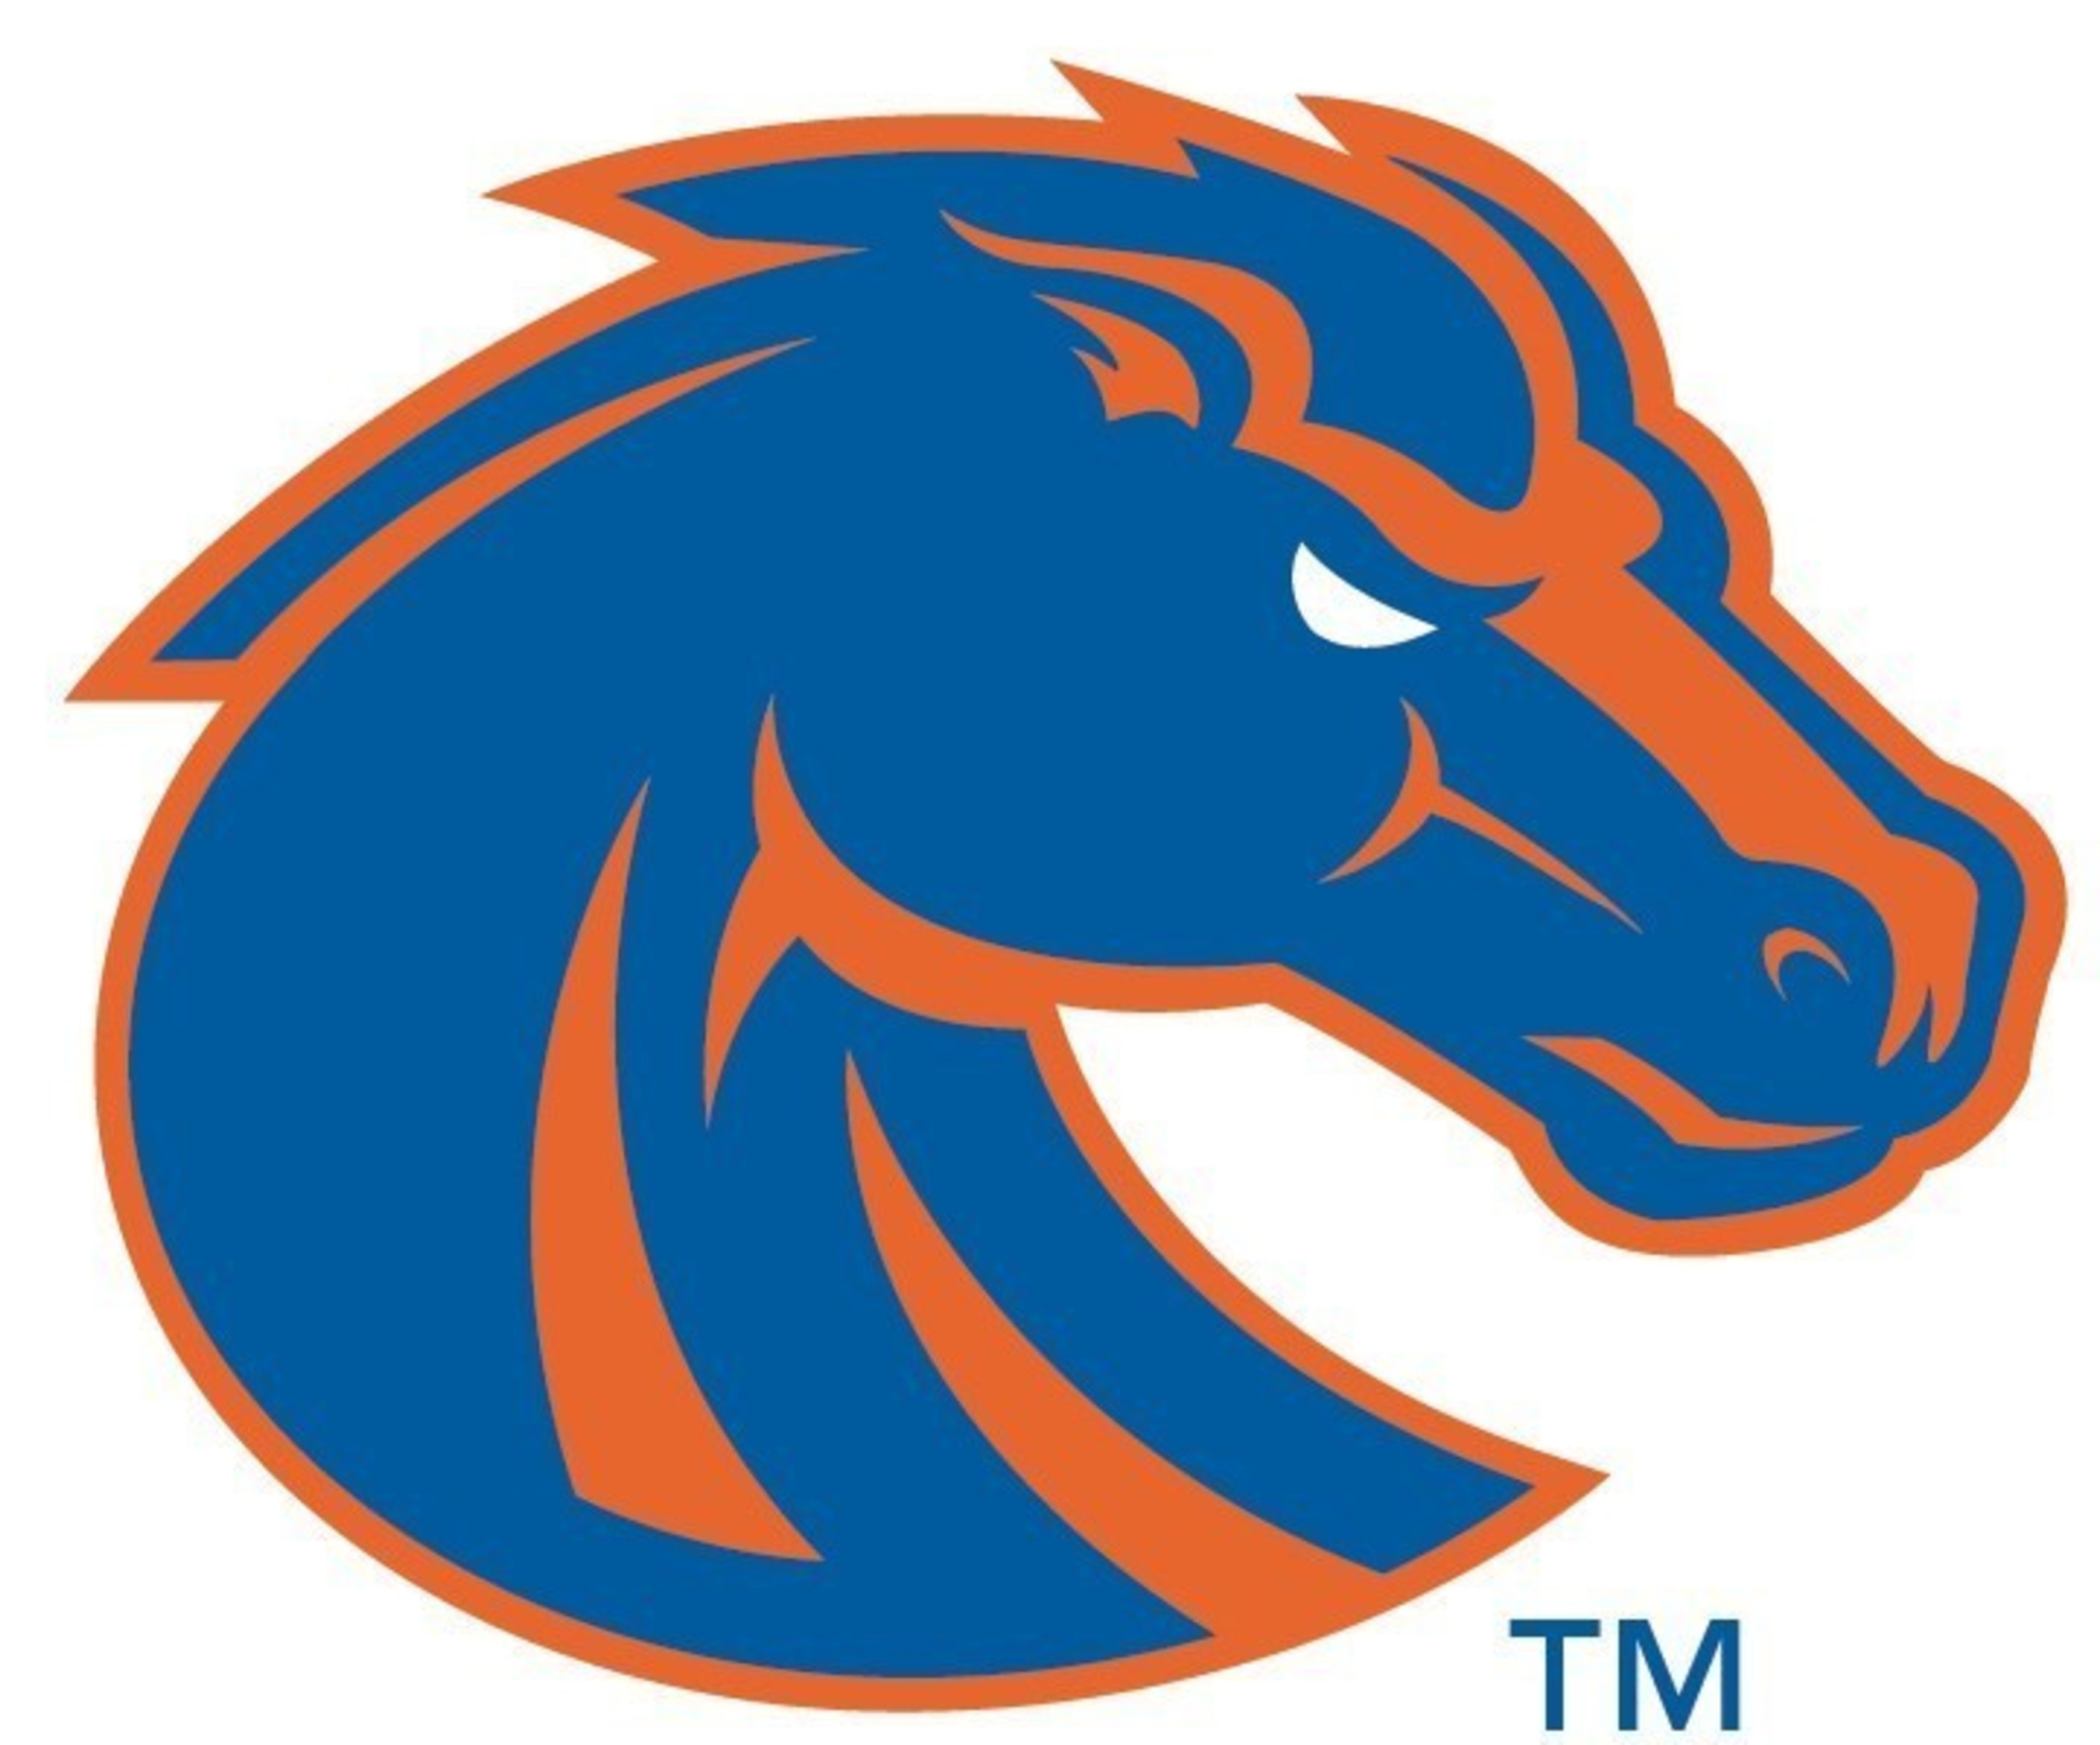 Boise State Enters Multiyear Agreement With Ticketmaster To Provide Comprehensive Suite Of Innovative Products, Services And Technology